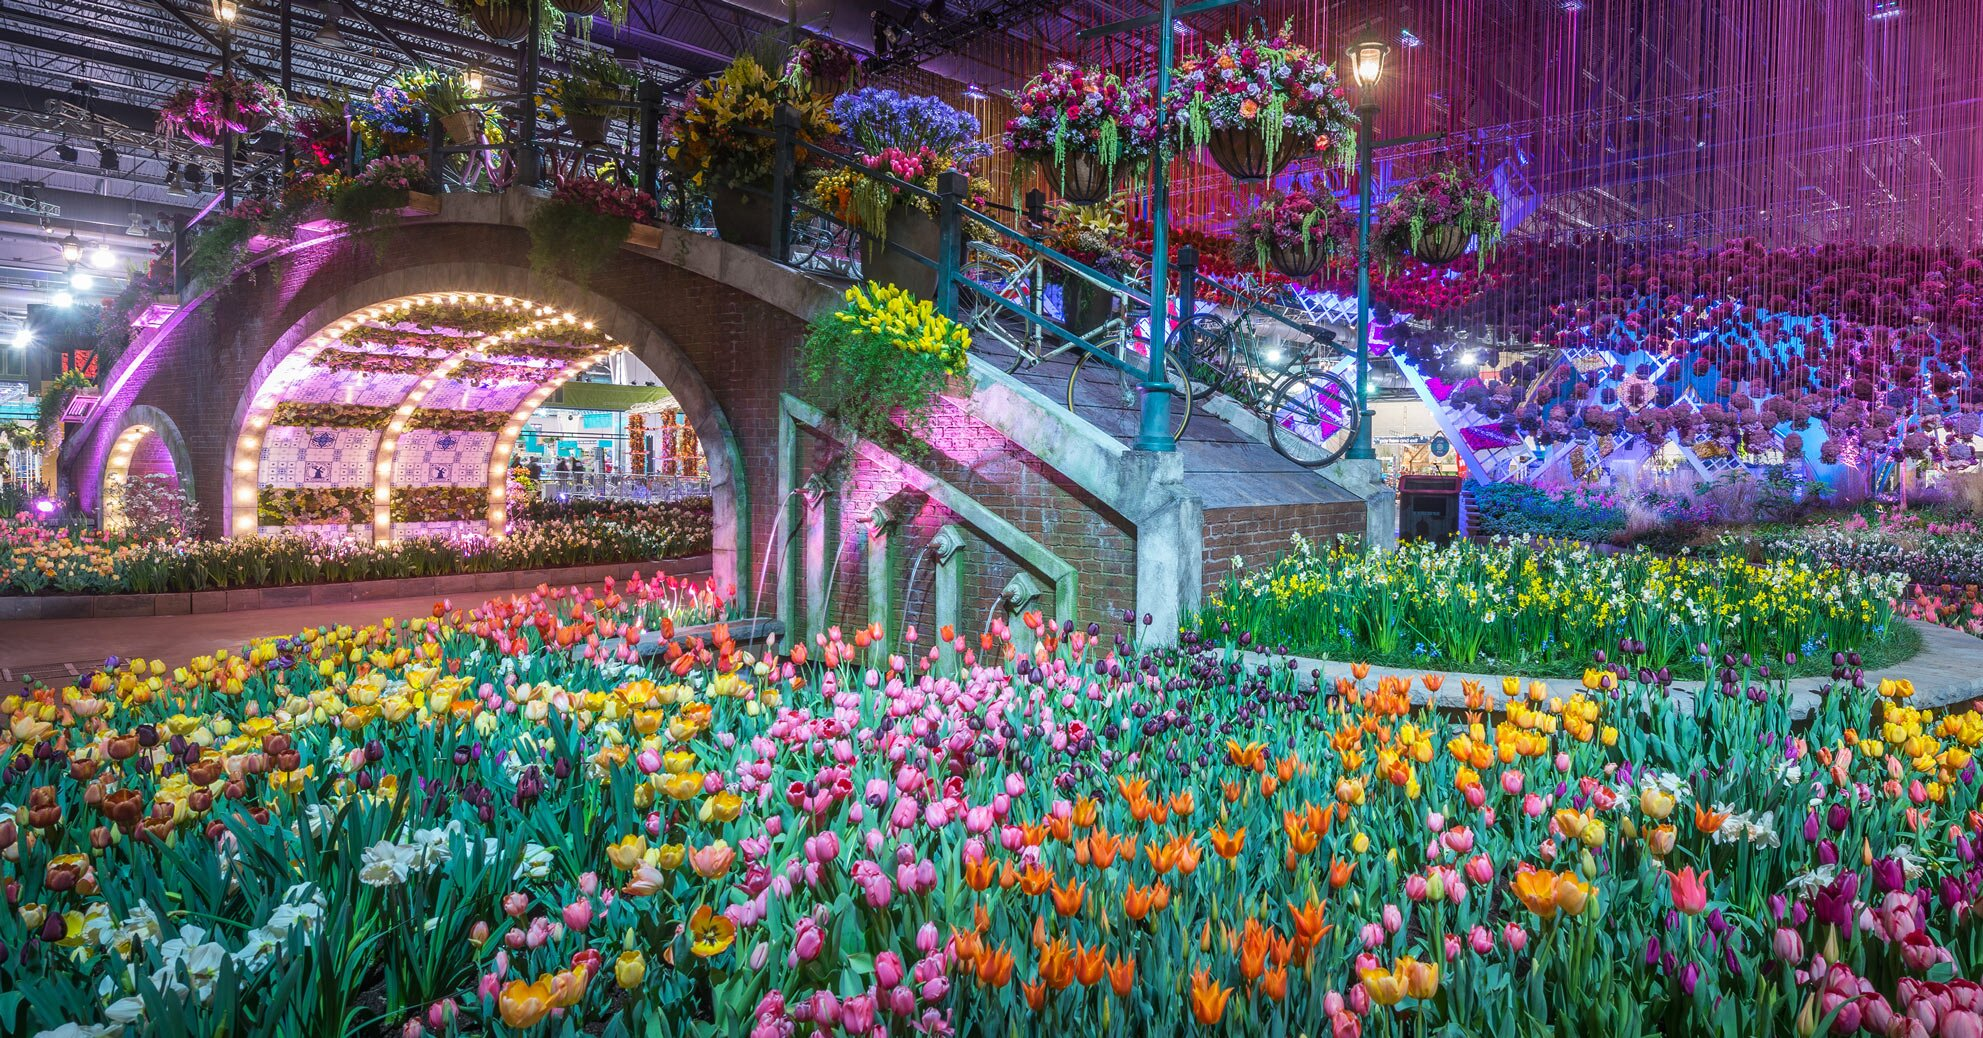 The Largest Flower Show in the U.S. Opens for the 191st Time This Weekend